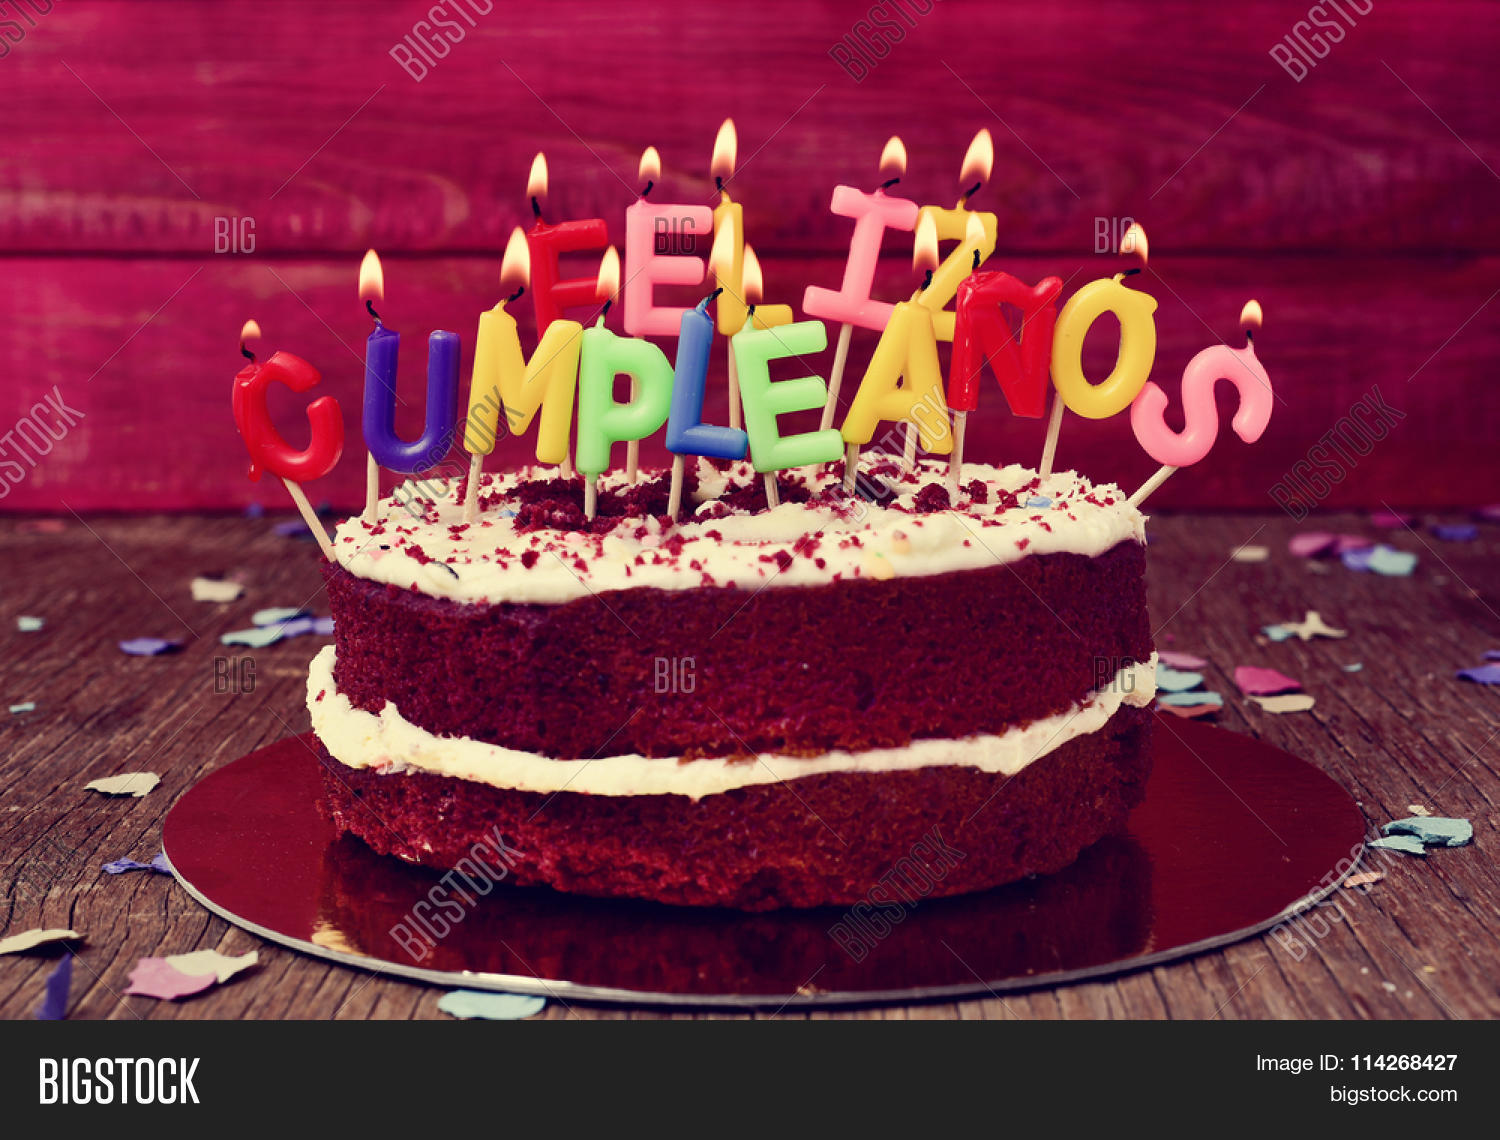 A Cake Topped With Some Lit Letter Shaped Candles Forming The Text Feliz Cumpleanos